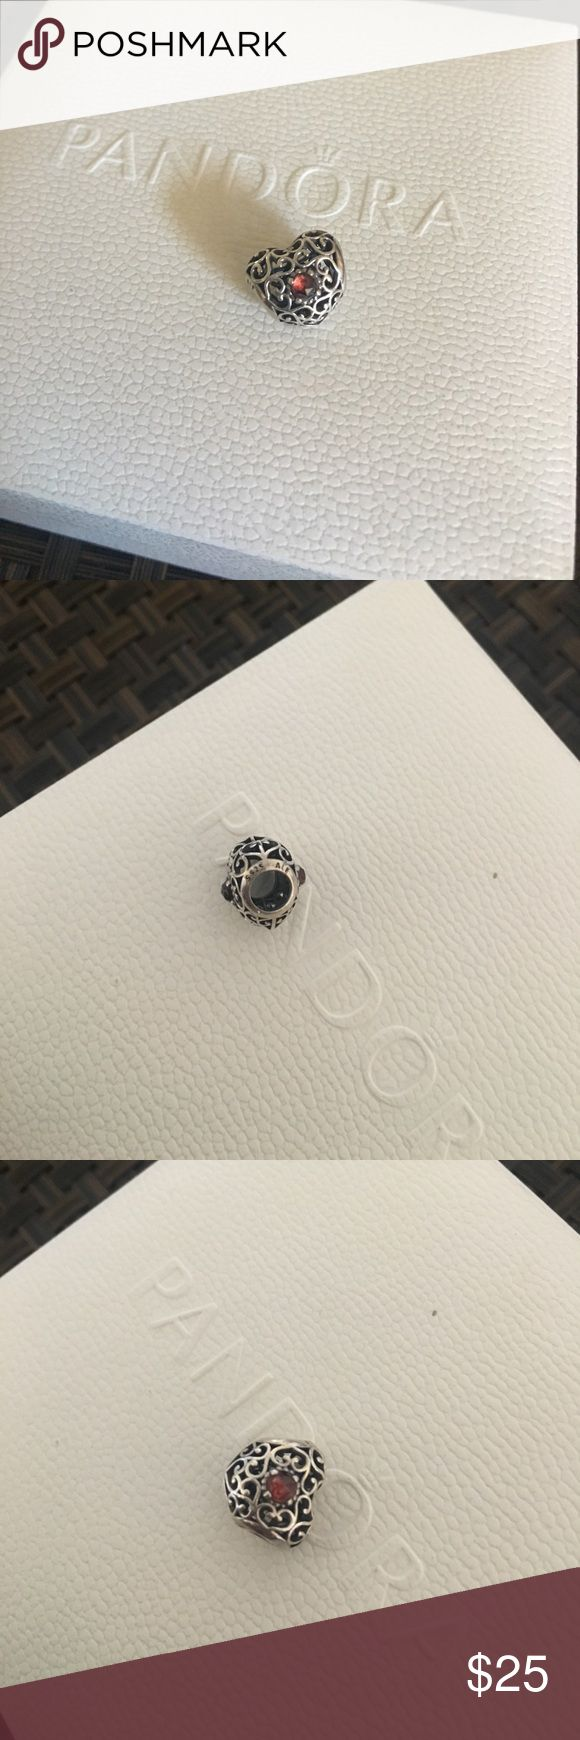 Authentic pandora birthday charm Color is January birthstone. Only worn once. 100% authentic. Just no longer have box. No Trades. Pandora Jewelry